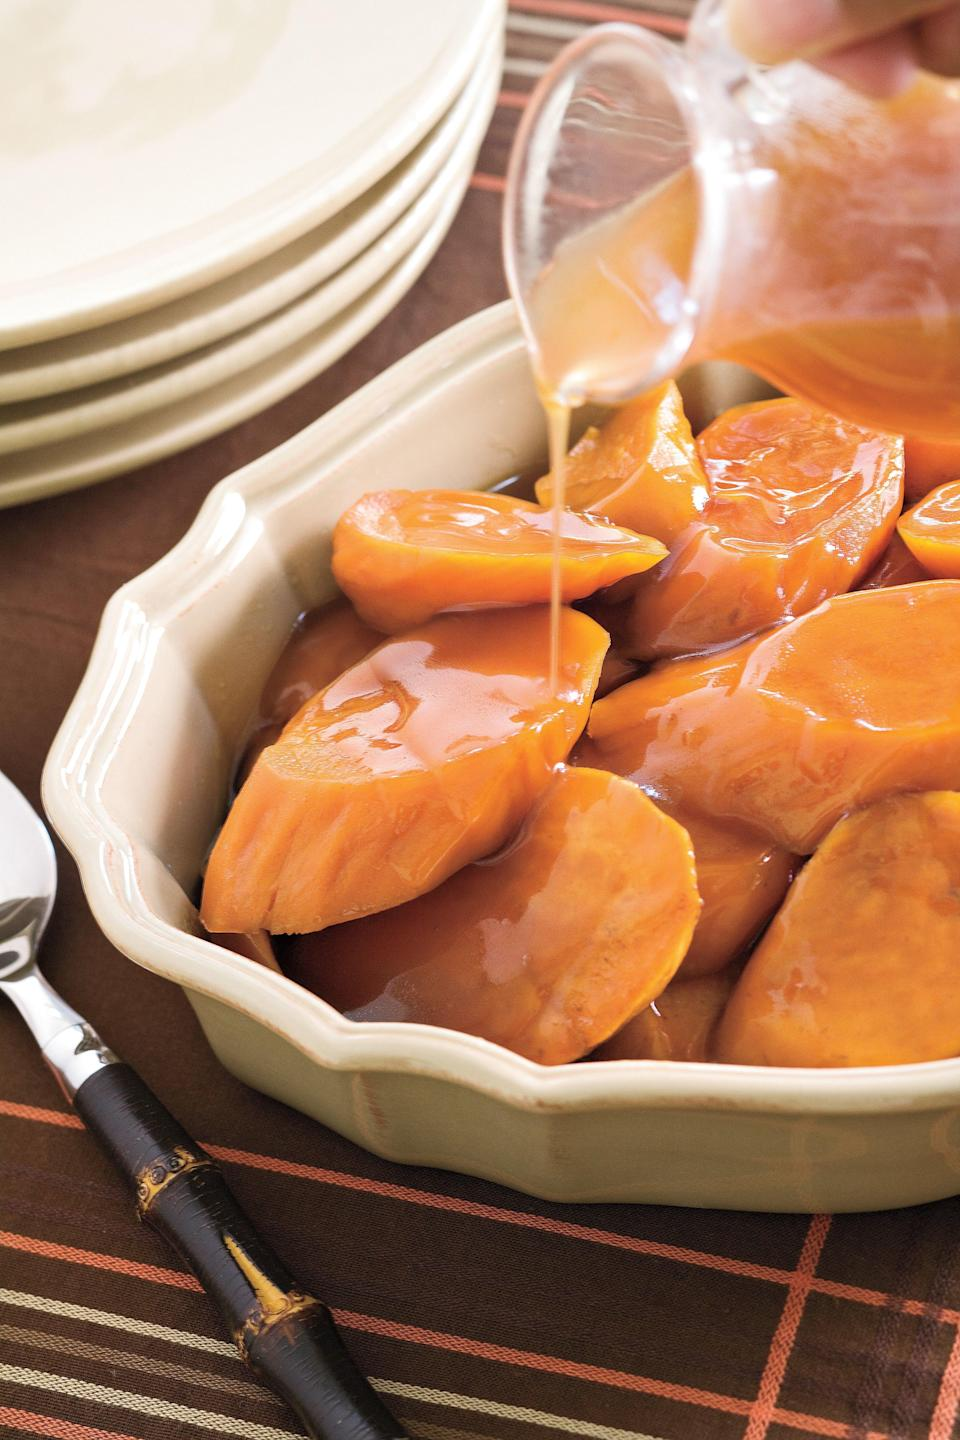 """<p><strong>Recipe:</strong> <strong><a href=""""http://www.myrecipes.com/recipe/candied-yams-10000001842446/"""" rel=""""nofollow noopener"""" target=""""_blank"""" data-ylk=""""slk:Candied Yams"""" class=""""link rapid-noclick-resp"""">Candied Yams</a></strong></p> <p>We updated the Southern staple candied yams recipe so that it can be cooked in a slow cooker. It's an extra-easy choice to heat and take to your next family gathering or potluck dinner.</p> <p><strong>Step-by-Step Video: <a href=""""http://www.myrecipes.com/how-to/video/how-to-make-candied-yams-00420000025815/"""" rel=""""nofollow noopener"""" target=""""_blank"""" data-ylk=""""slk:Slow-Cooker Candied Yams"""" class=""""link rapid-noclick-resp"""">Slow-Cooker Candied Yams</a></strong></p>"""